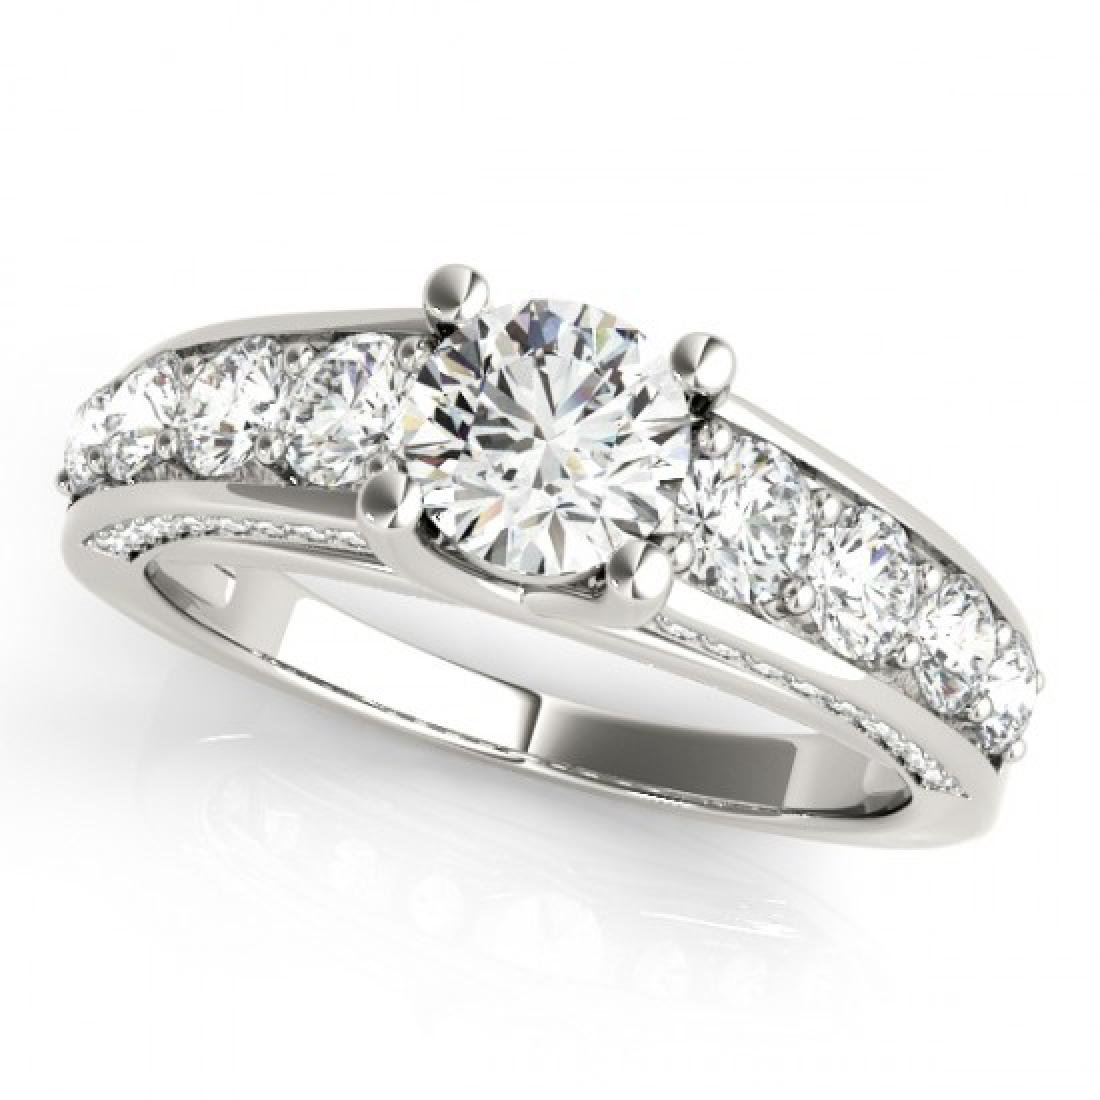 2.55 CTW Certified VS/SI Diamond Solitaire Ring 14K